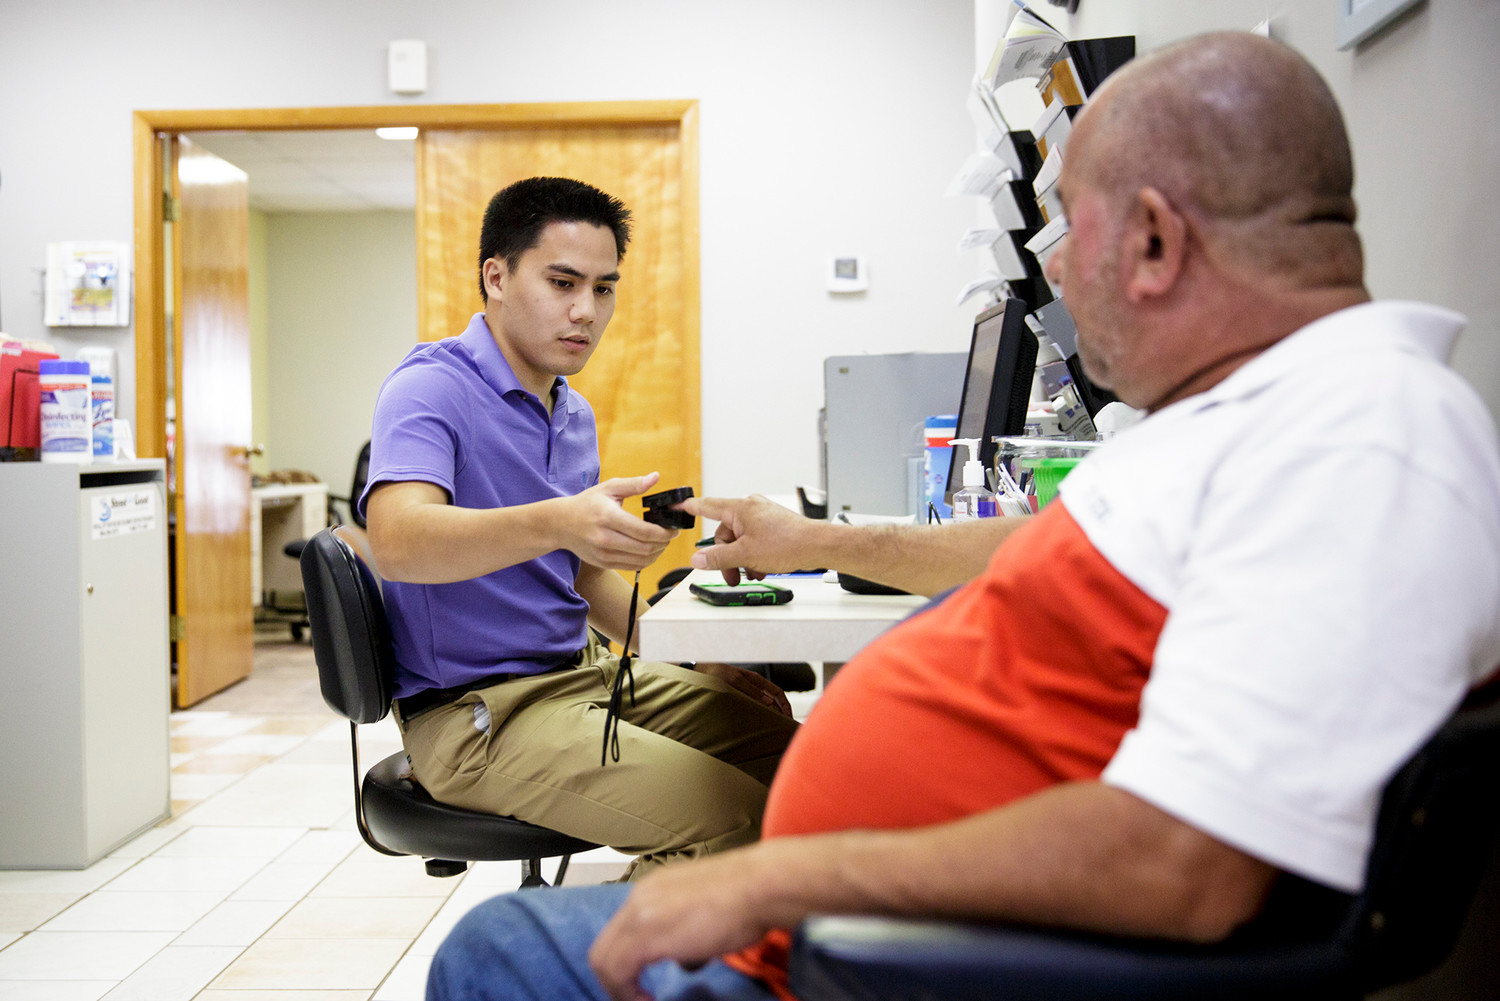 Volunteer Stephen Marcos checks a patients pulse Tuesday afternoon at The Way free medical clinic in Green Cove Springs. After some leadership and financial woes, the clinic is looking to the community for help to rebuild.